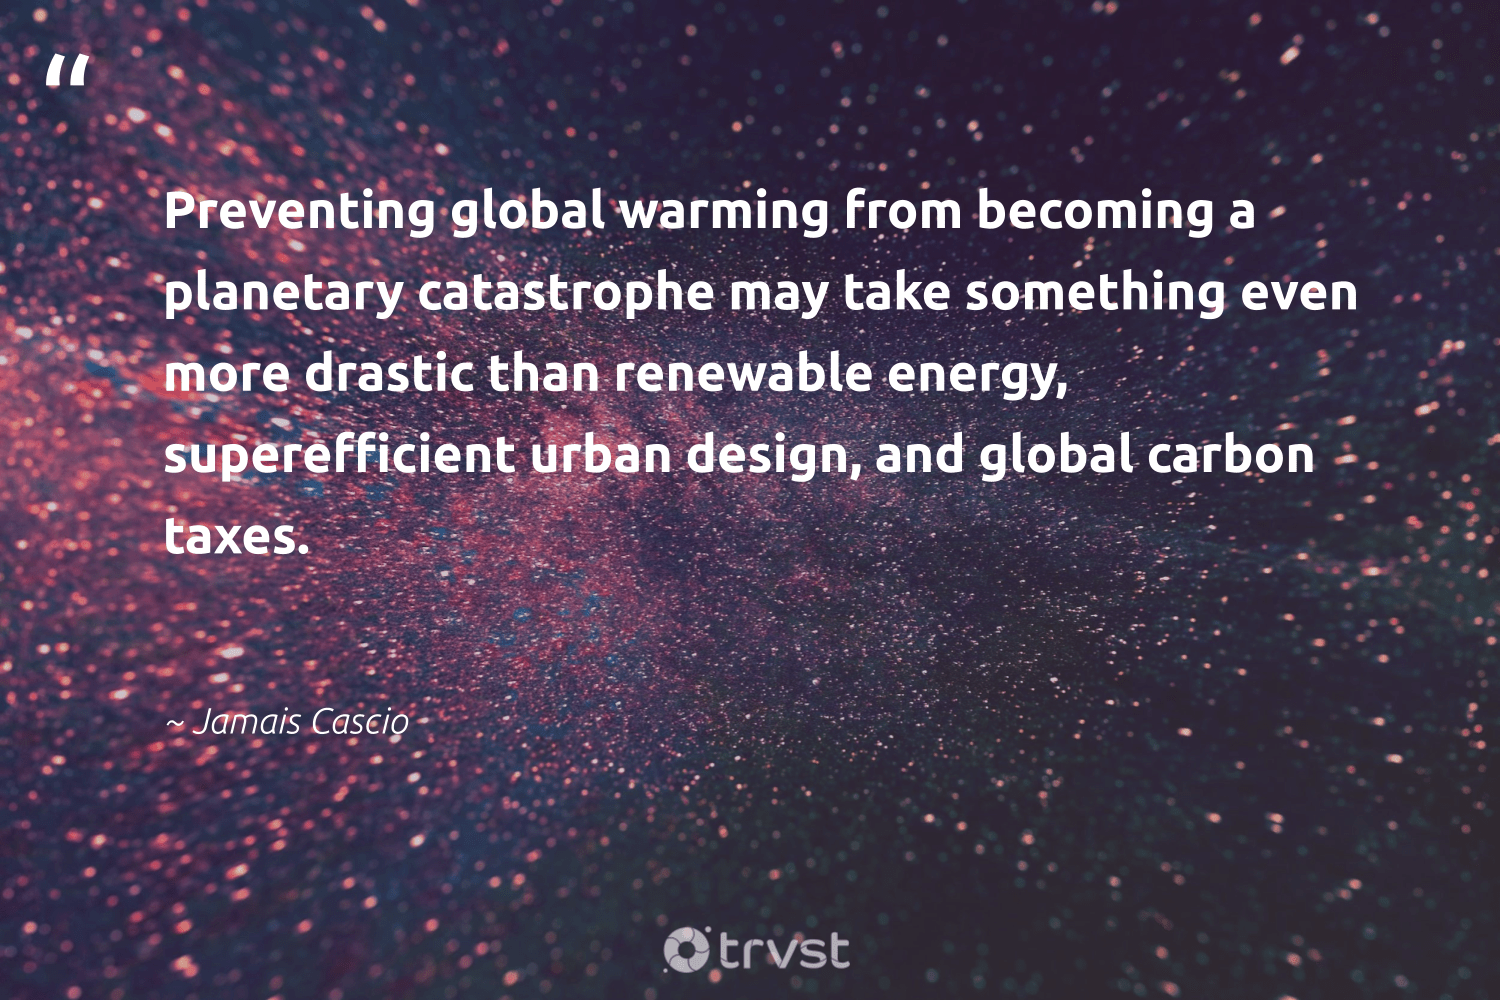 """""""Preventing global warming from becoming a planetary catastrophe may take something even more drastic than renewable energy, superefficient urban design, and global carbon taxes.""""  - Jamais Cascio #trvst #quotes #renewableenergy #globalwarming #carbon #energy #renewable #design #lowcarbon #affordable #environmental #environmentallyfriendly"""